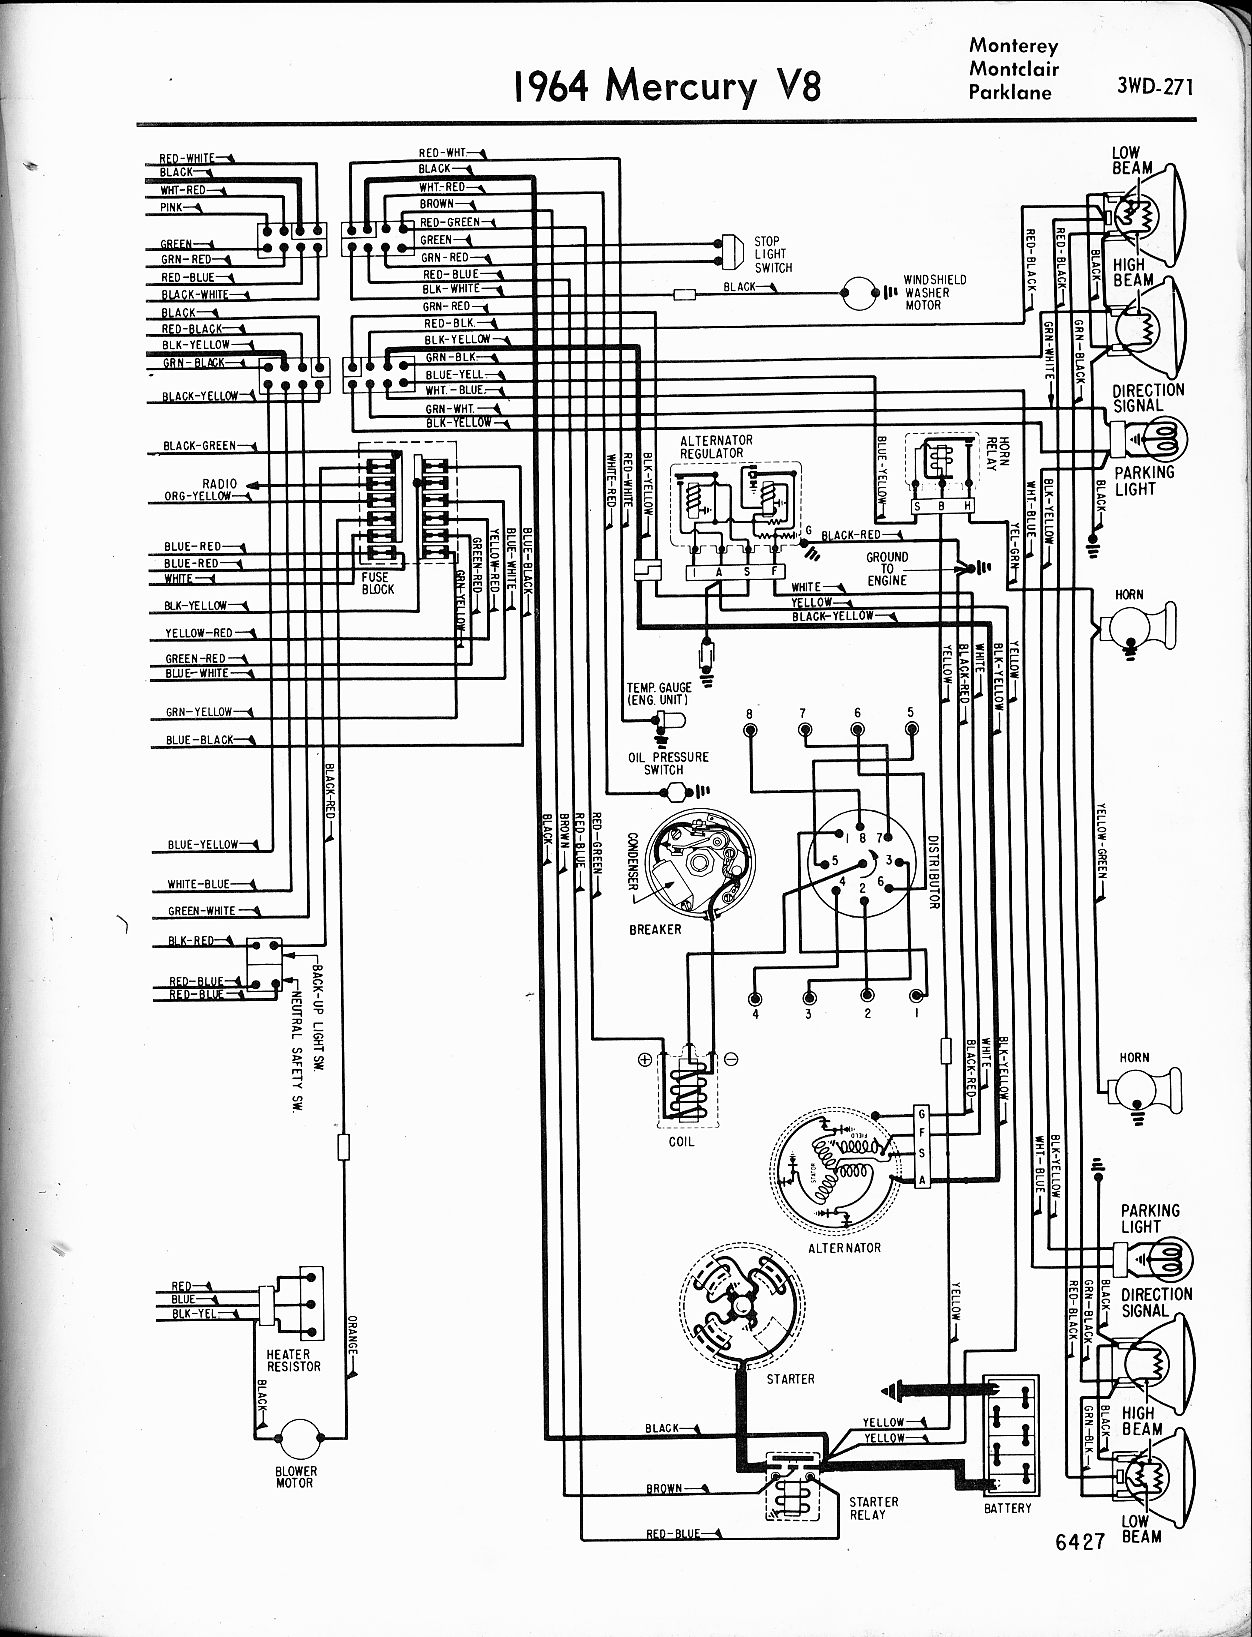 [WRG-8679] Turn Signal Wiring Diagram 1950 Merc